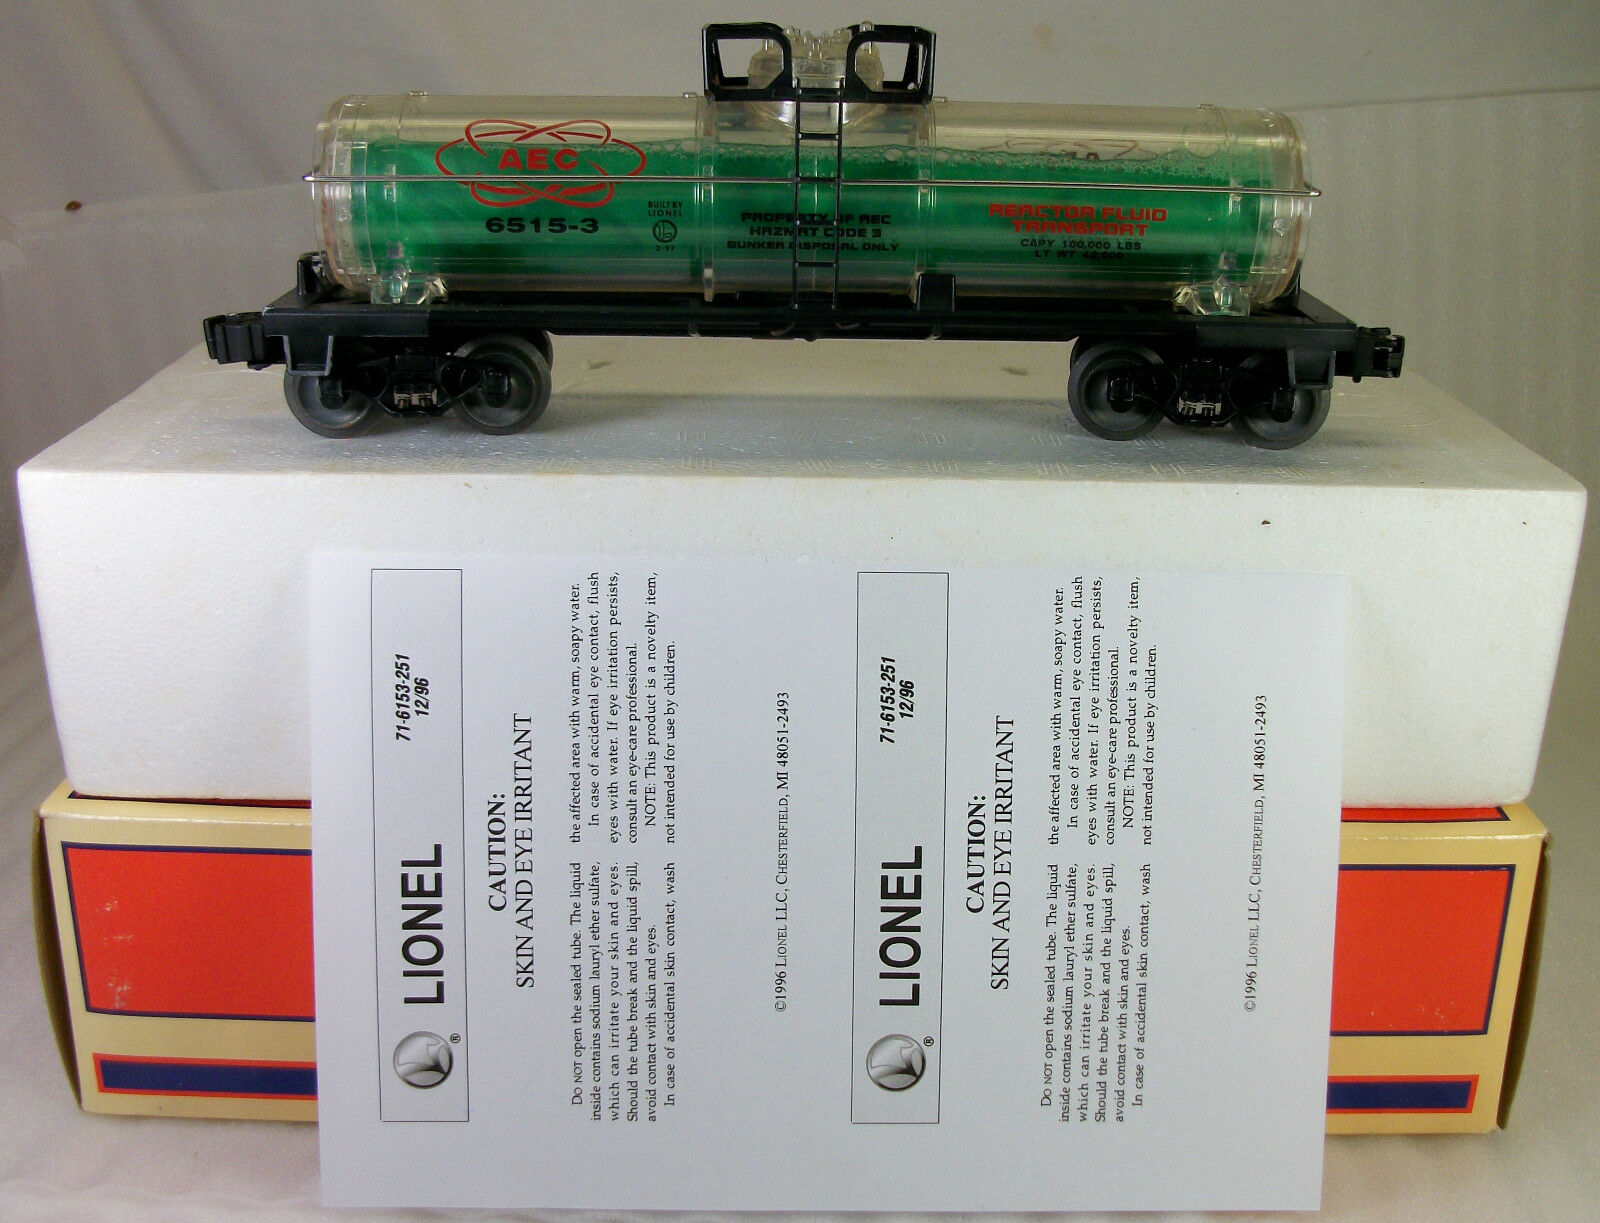 LIONEL: 16155 AEC REACTOR FLUID SINGLE DOME TANK CAR C-8 LN ORIGINAL BOX